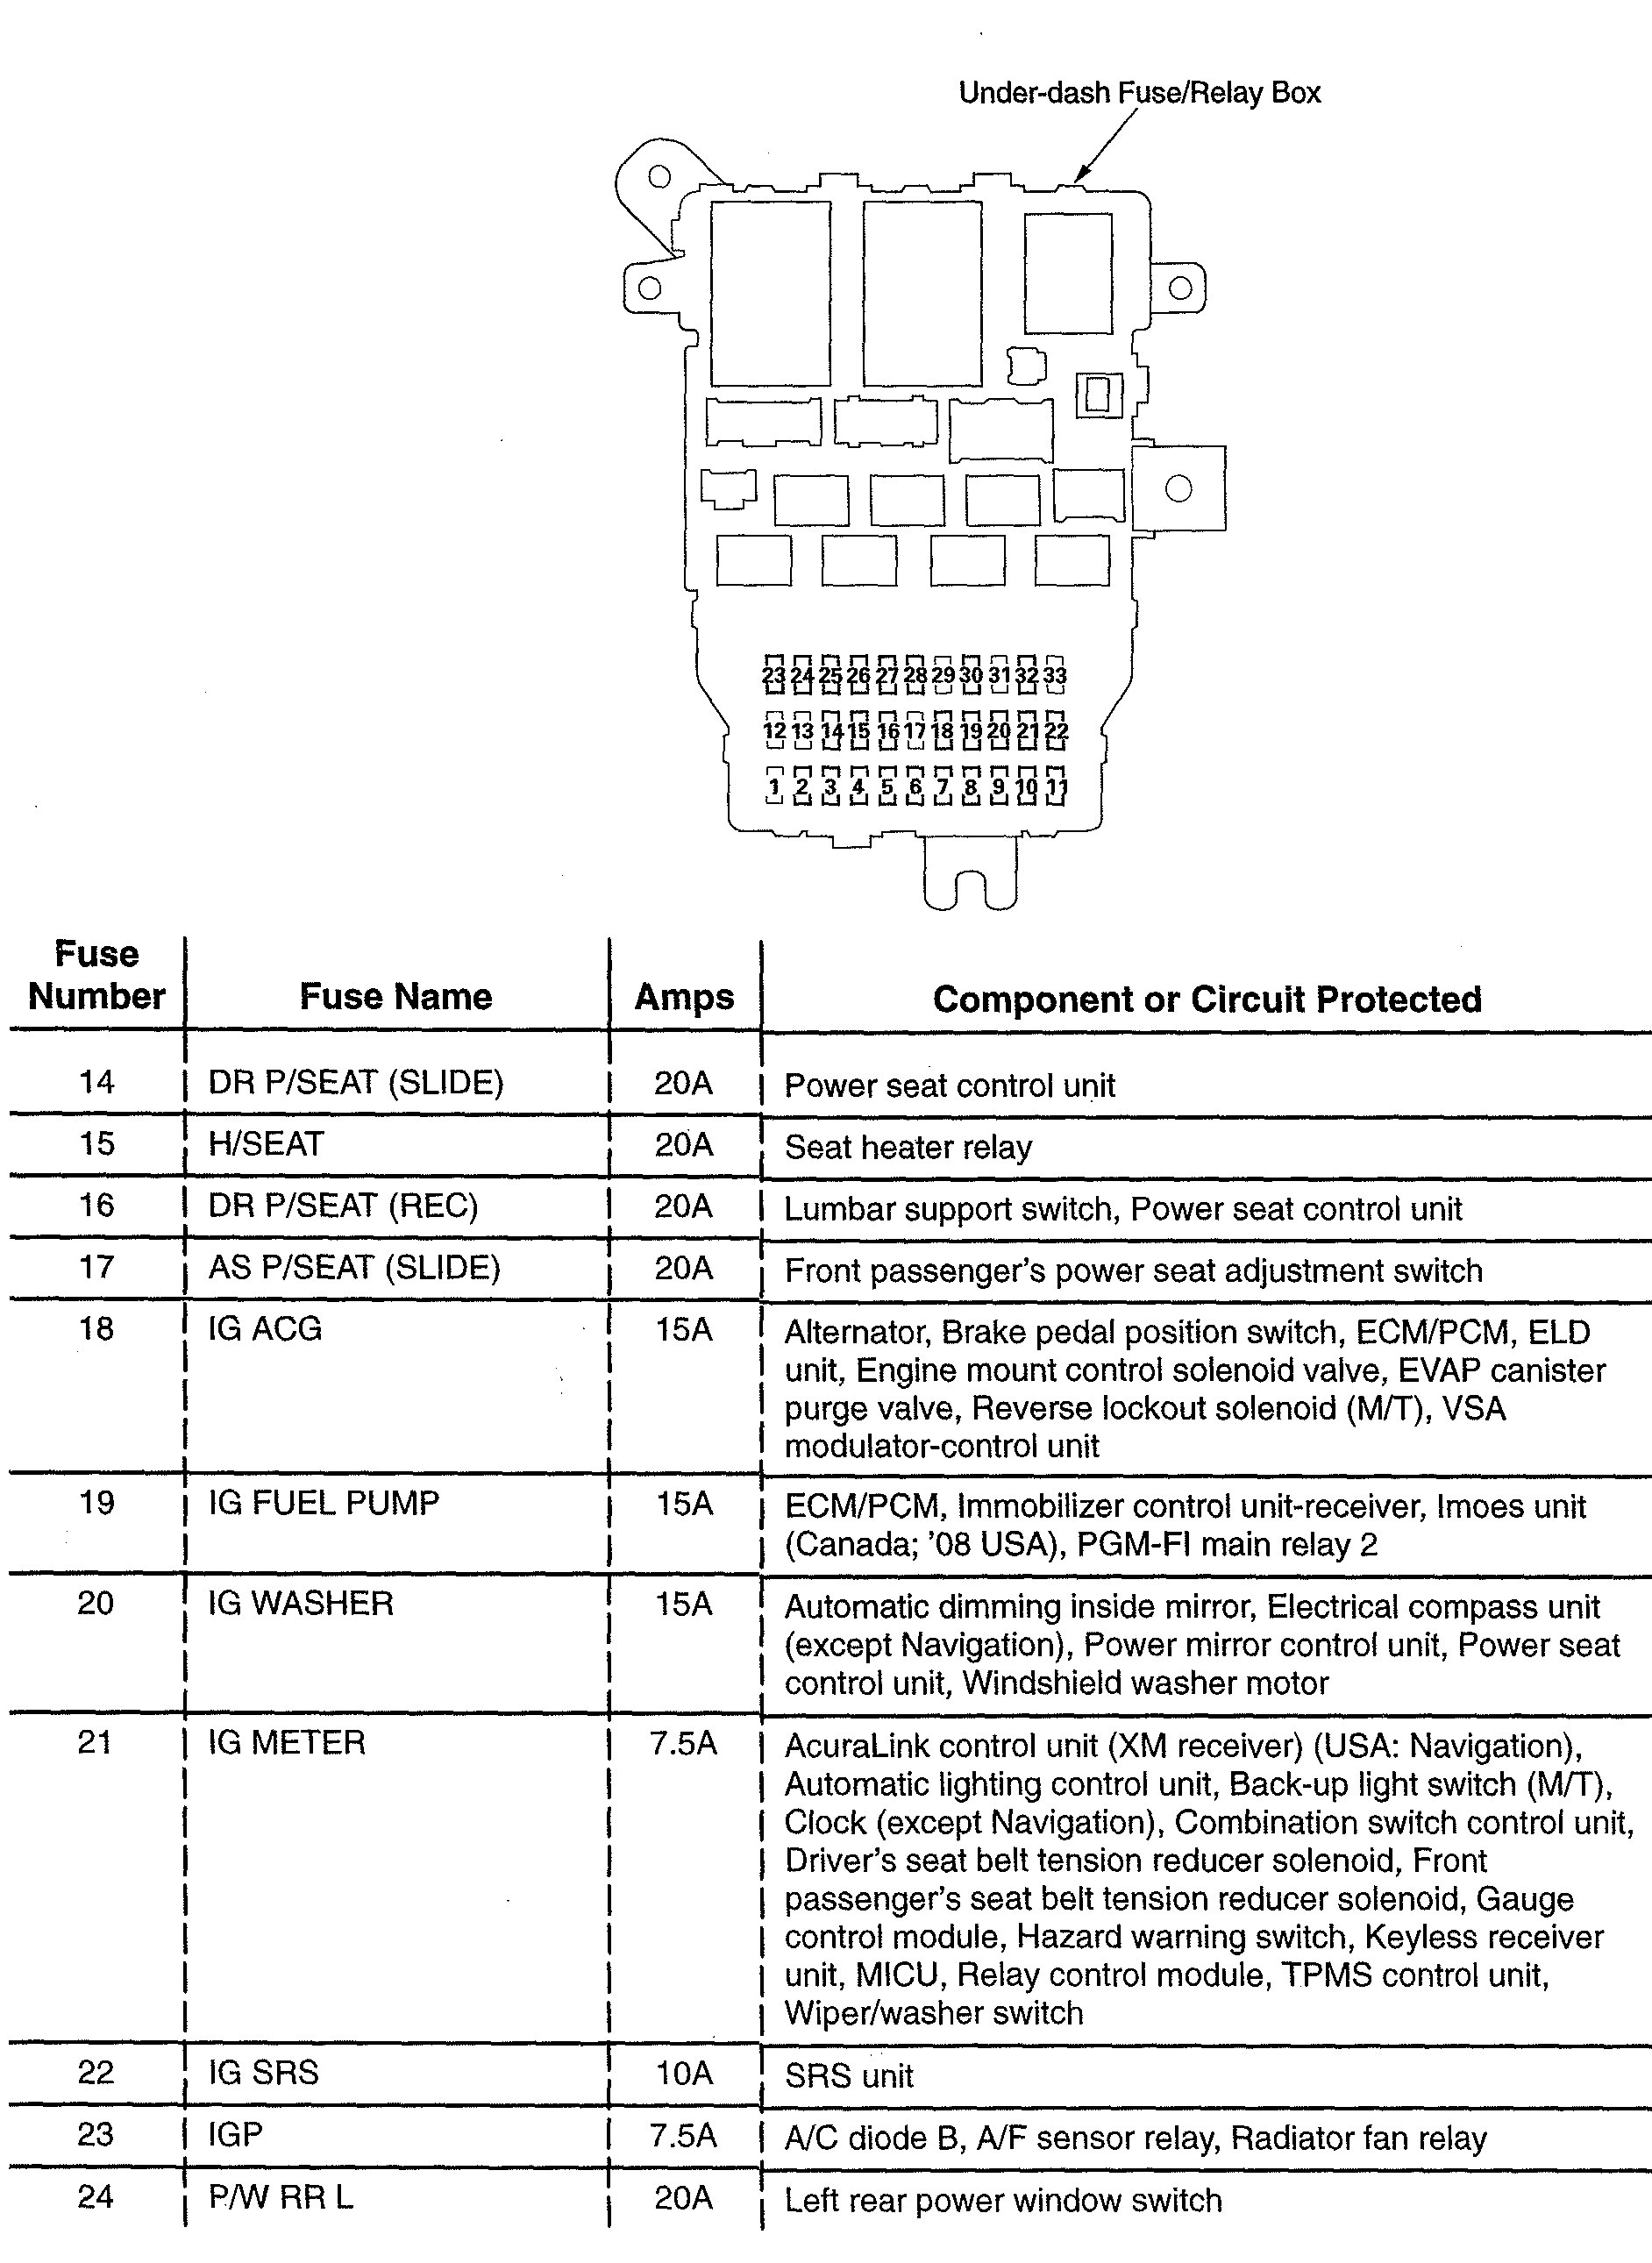 acura tl wiring diagram fuse panel 2 2008 acura tl (2008) wiring diagrams fuse panel carknowledge 2007 acura tl wiring diagram at n-0.co